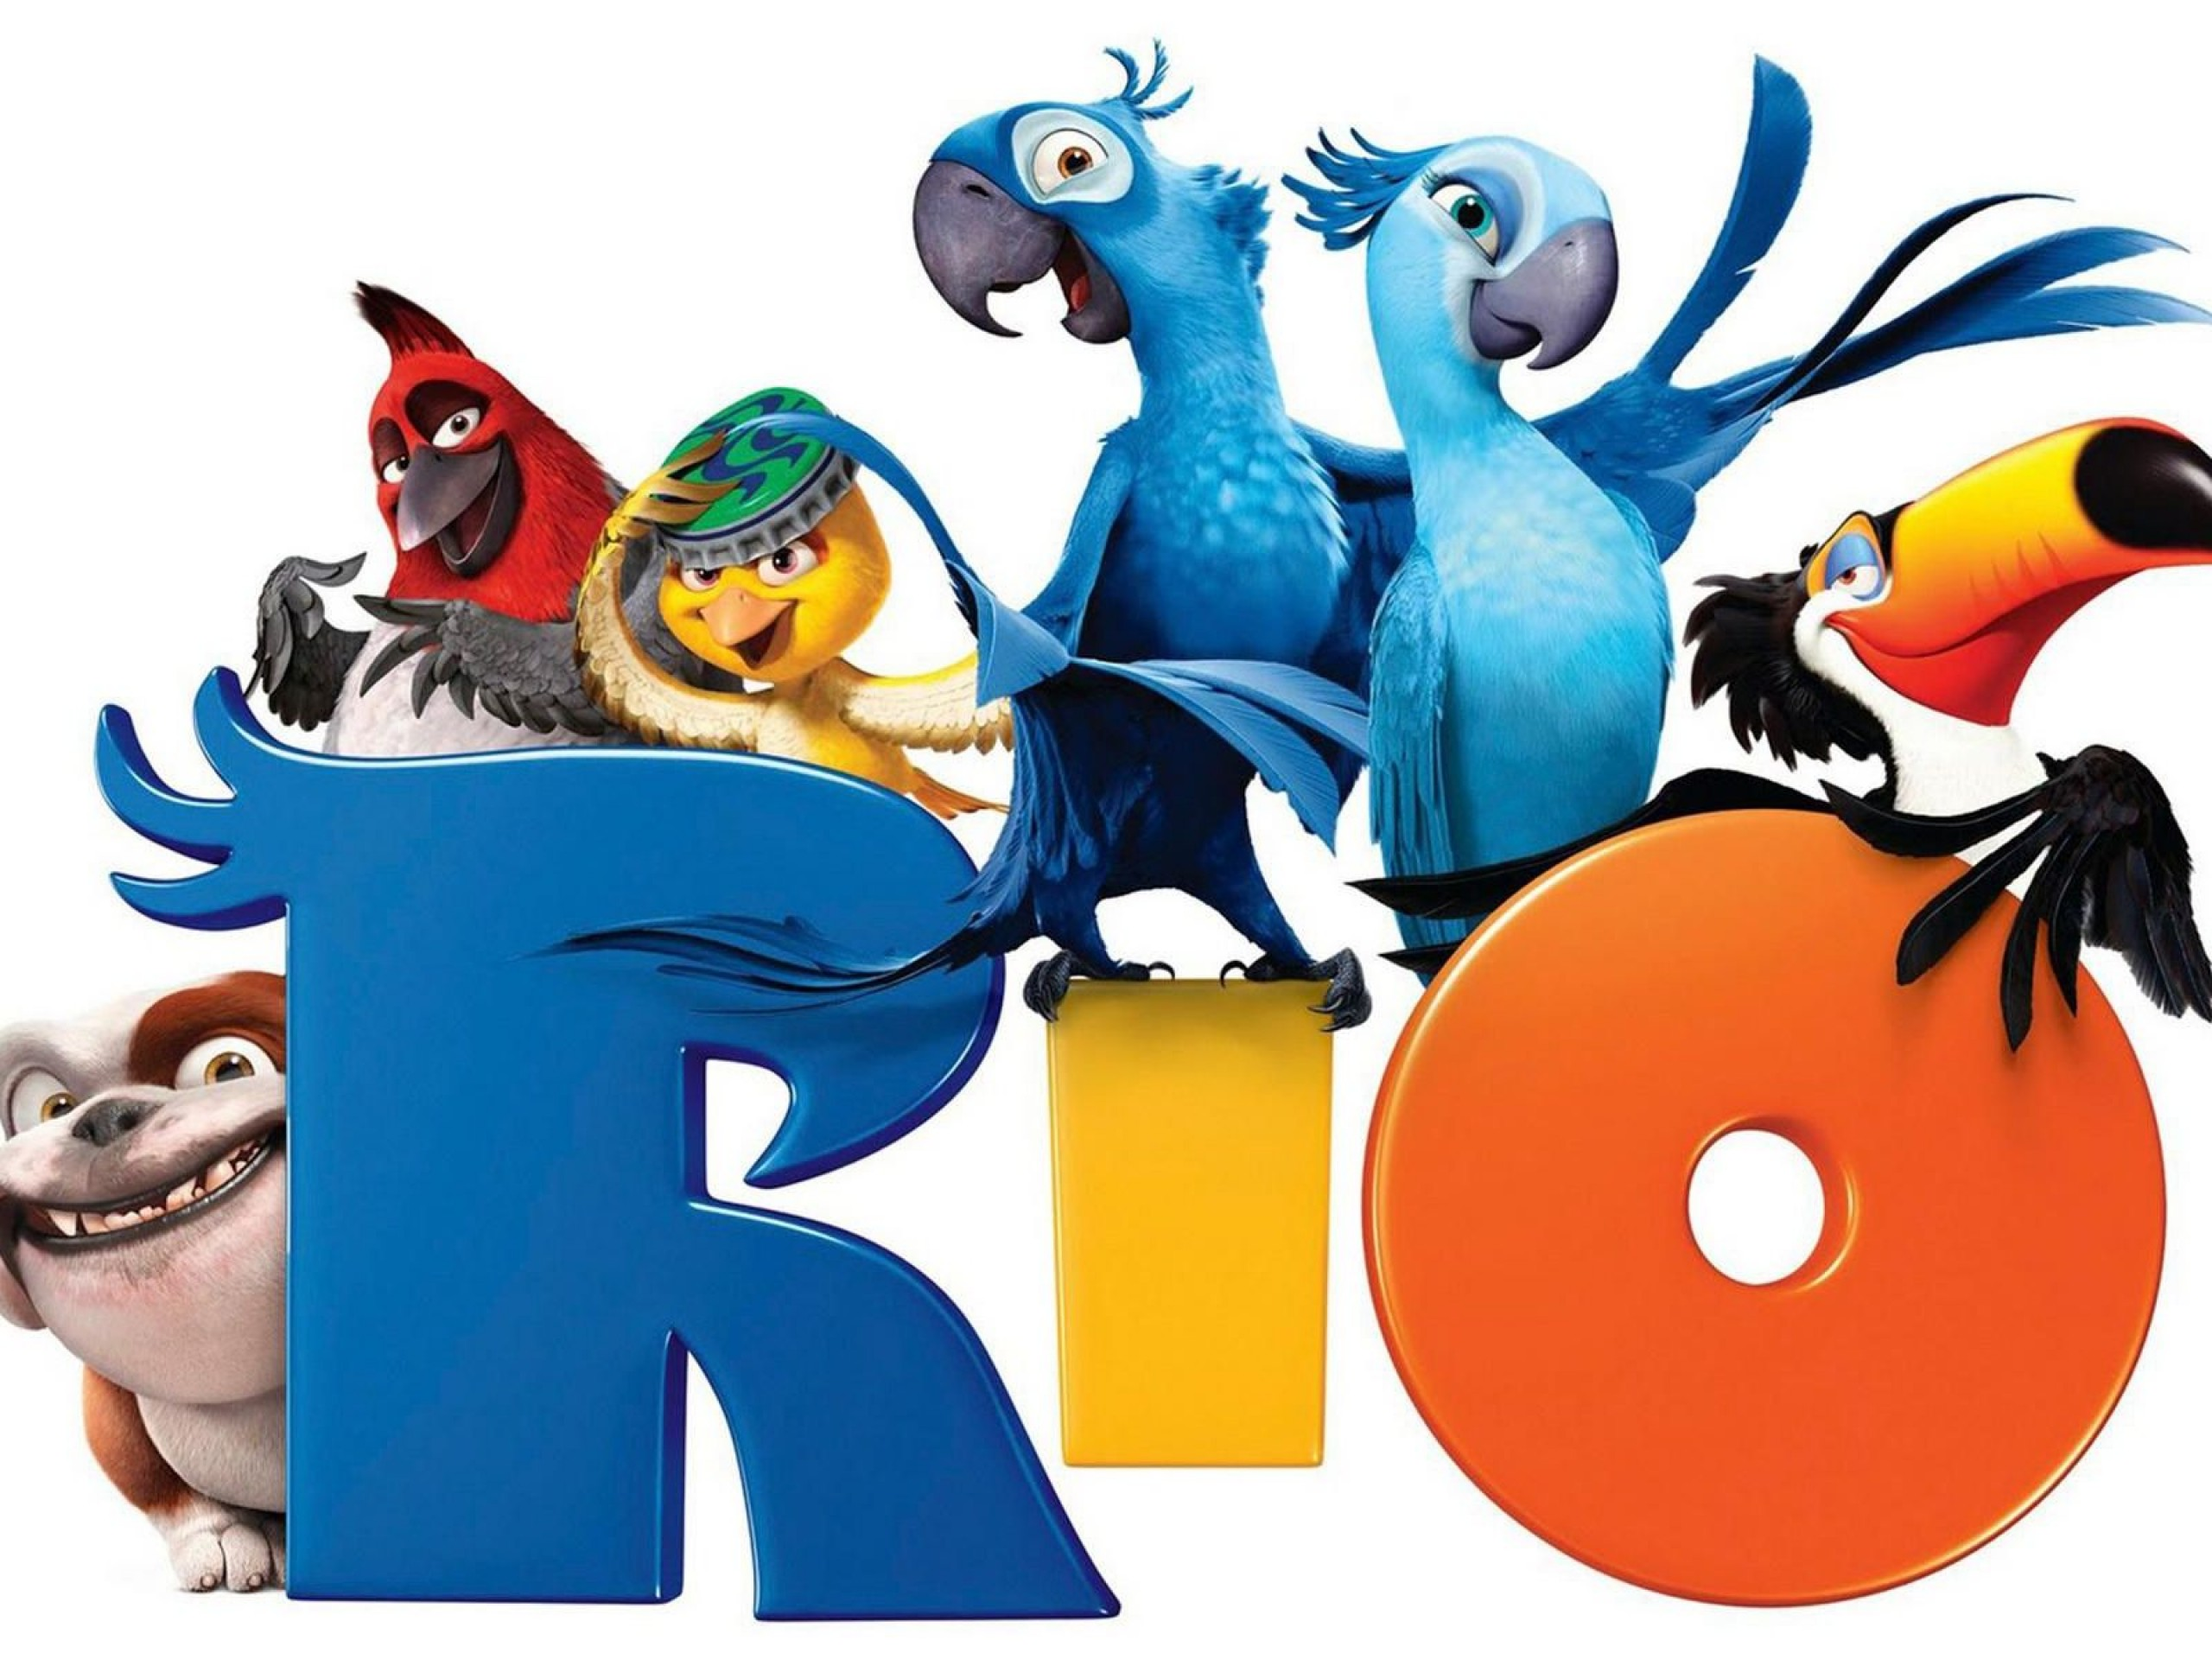 2560x1920 Rio Movie Wallpaper For Iphone 6